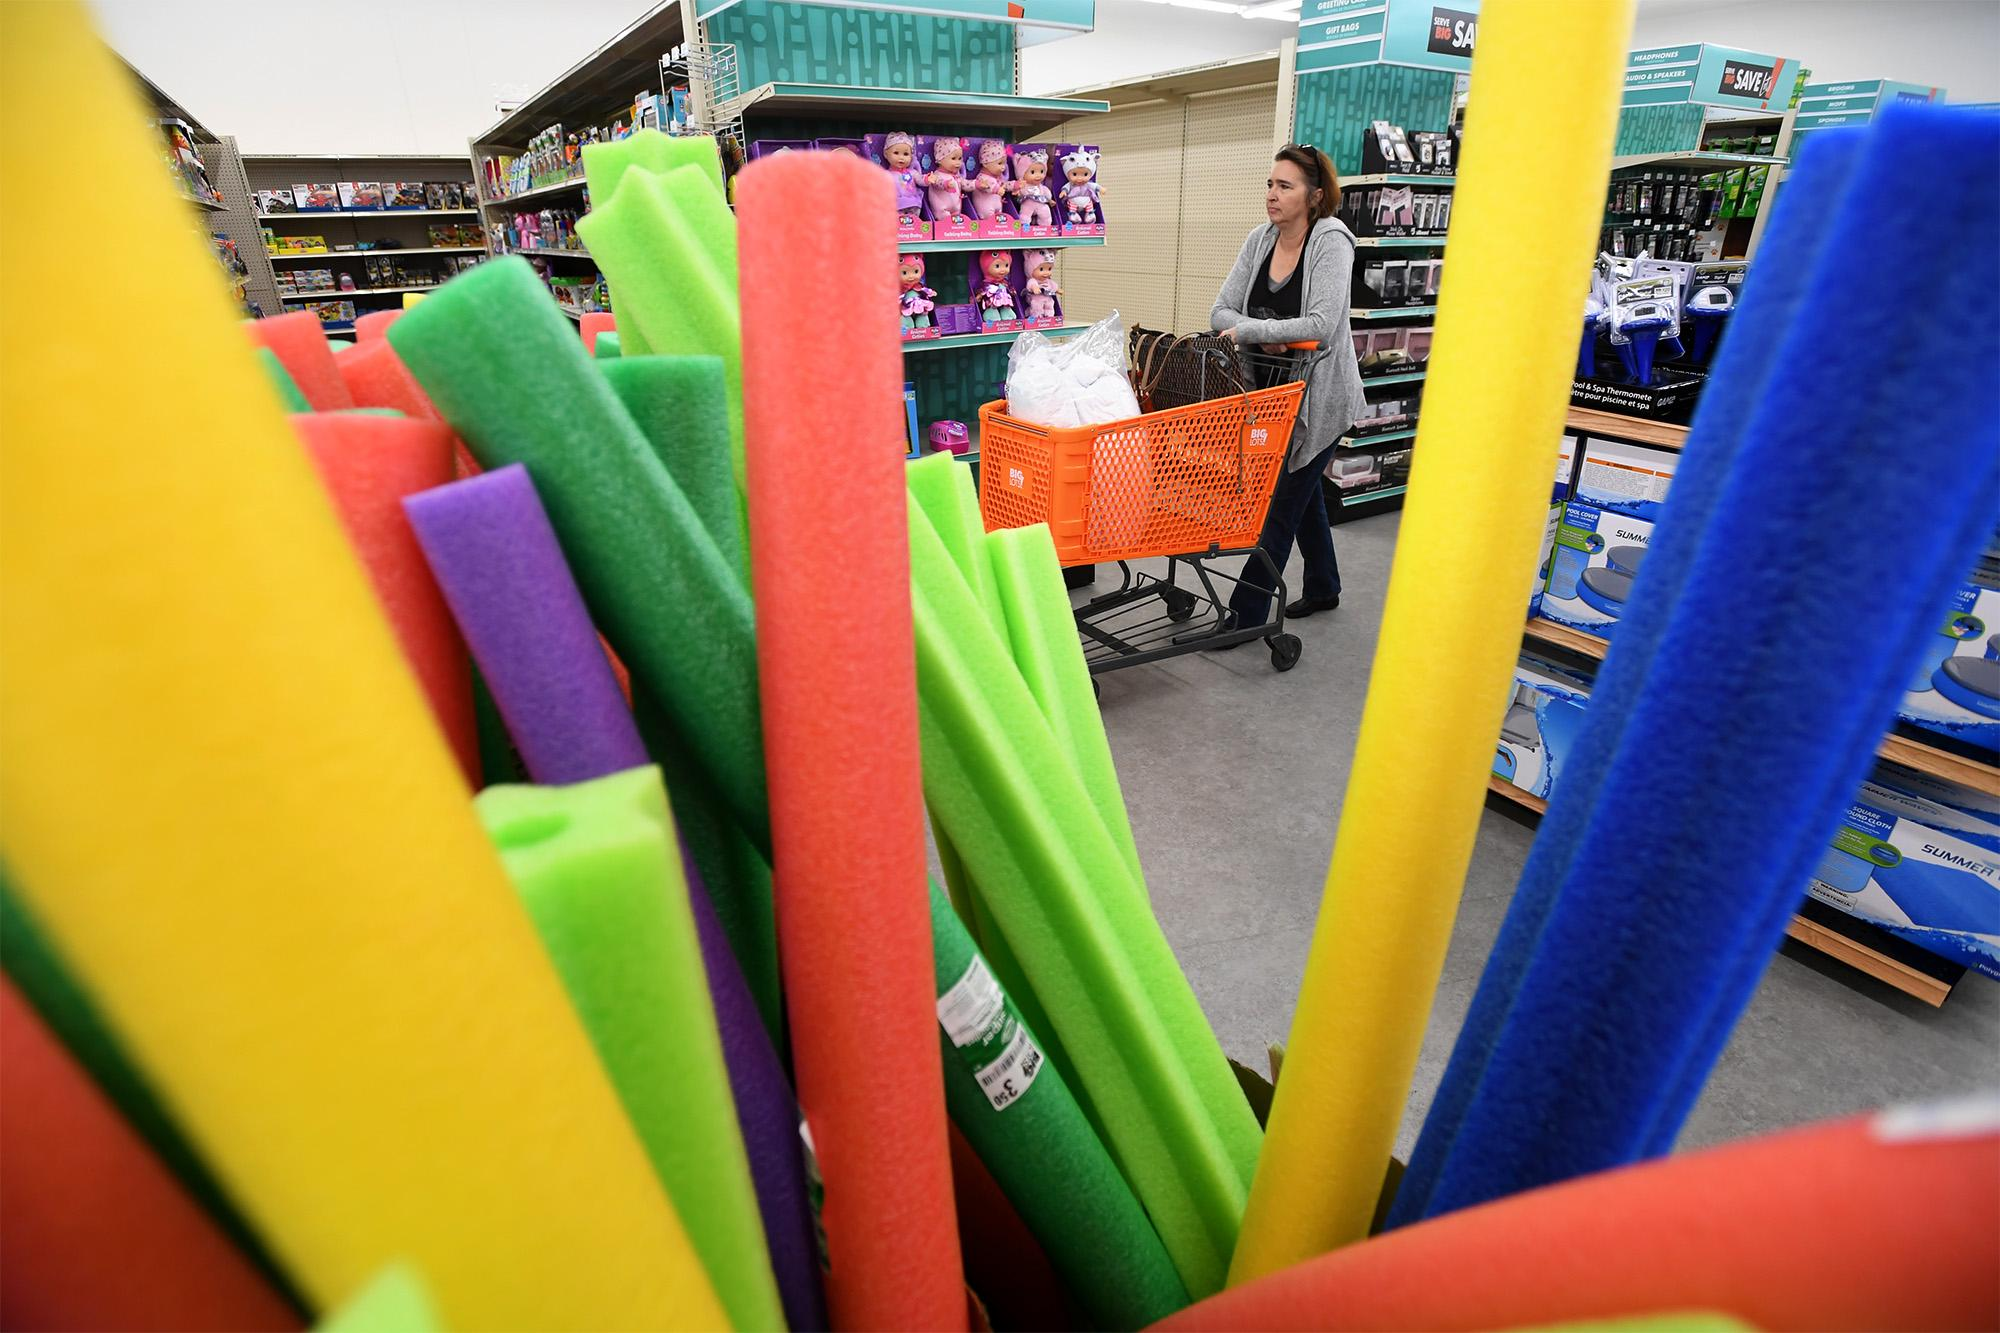 Piscines Es & Spas big lots sees 'store of the future' in beaumont - beaumont